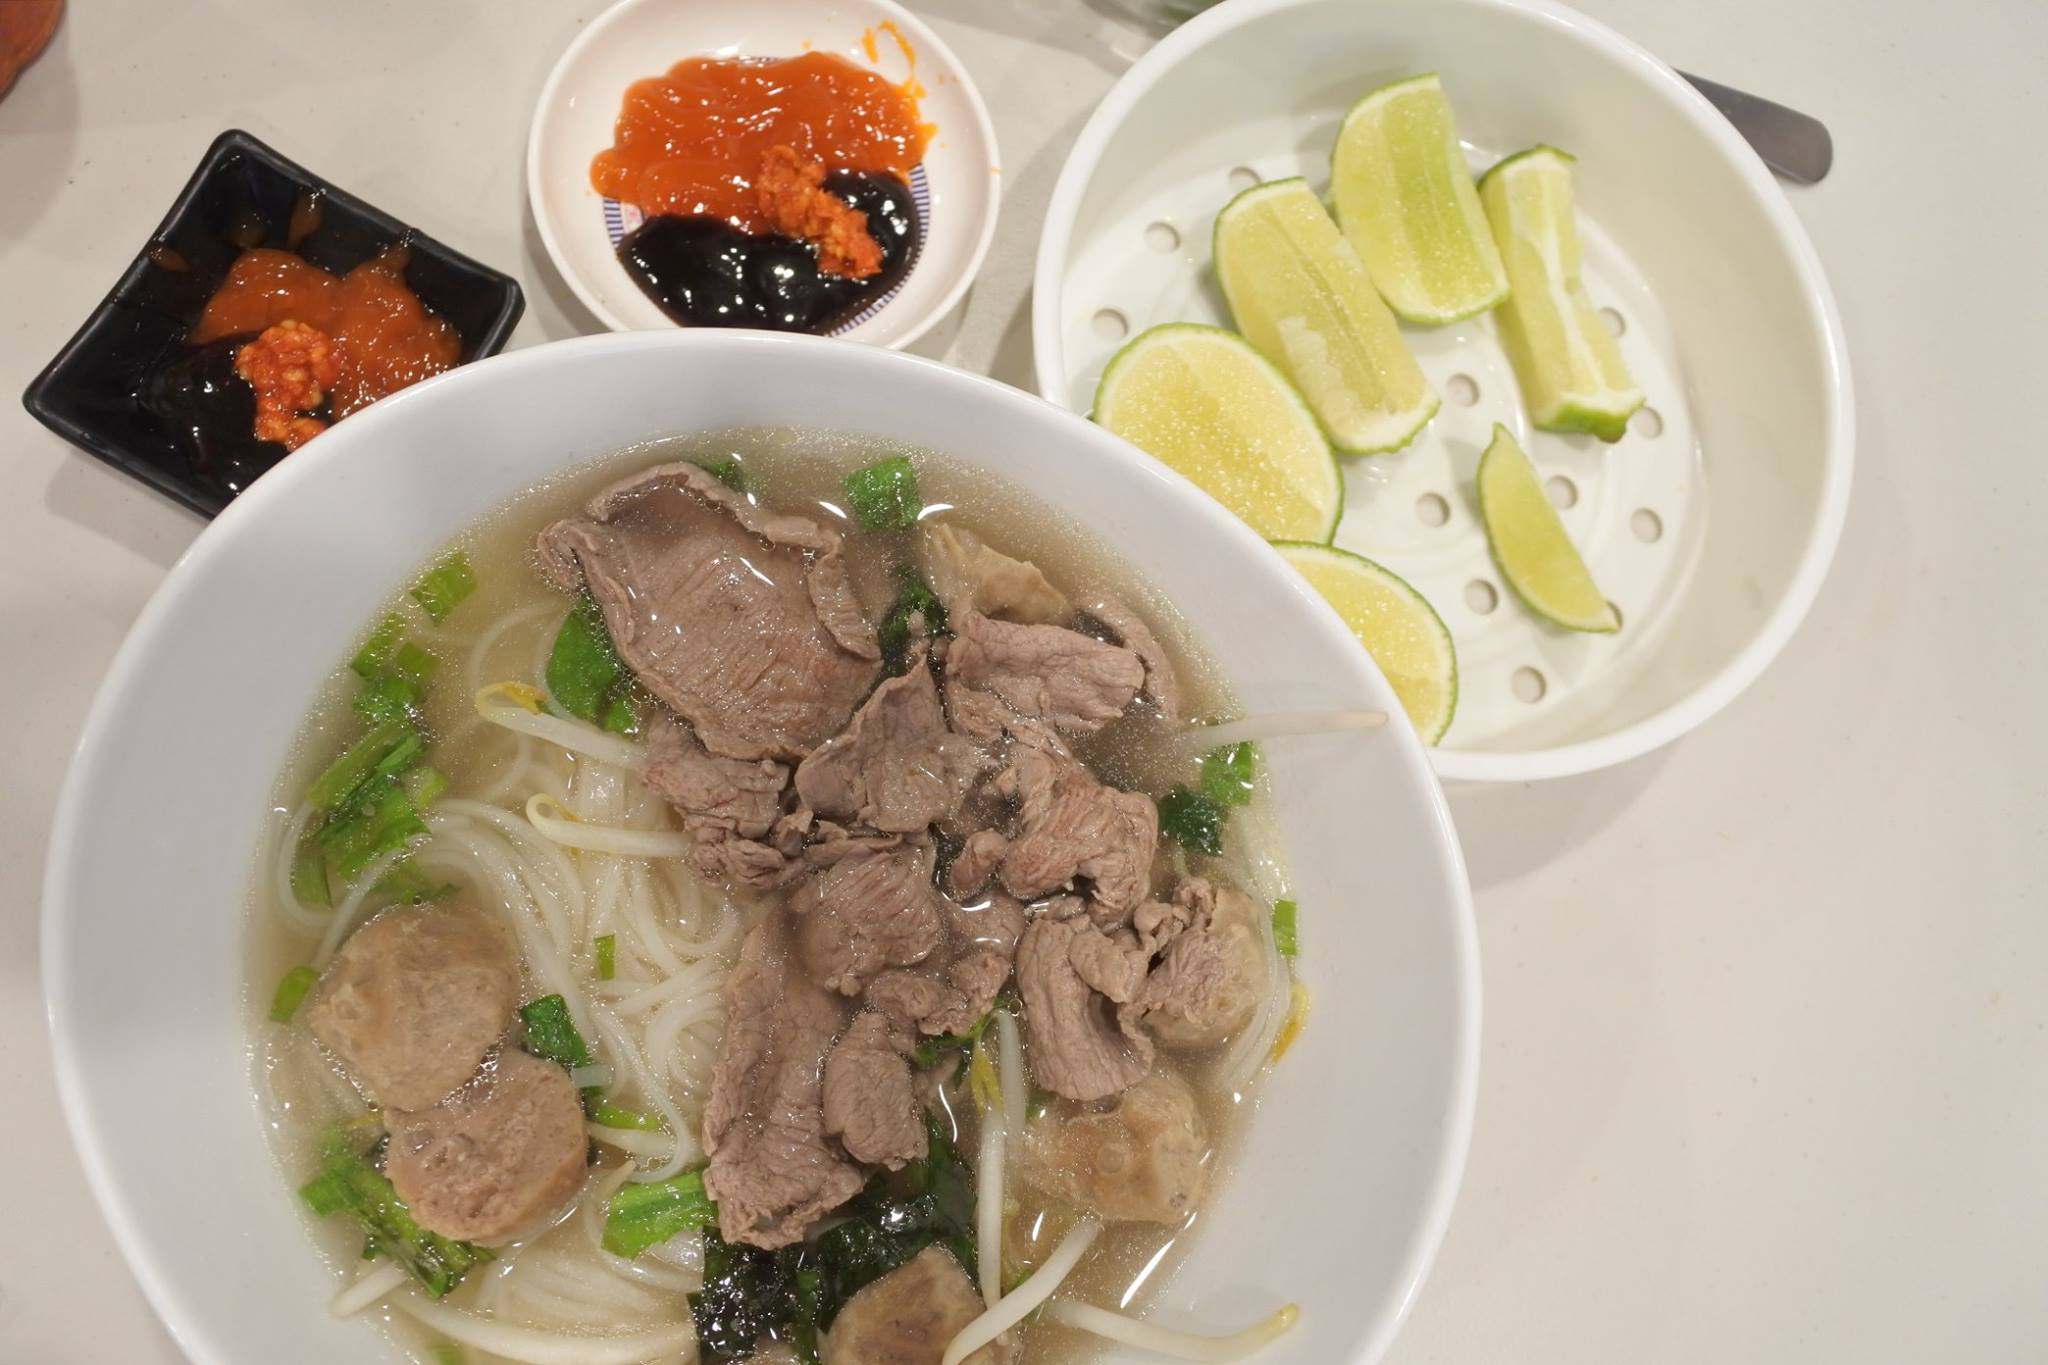 The love story behind Phở